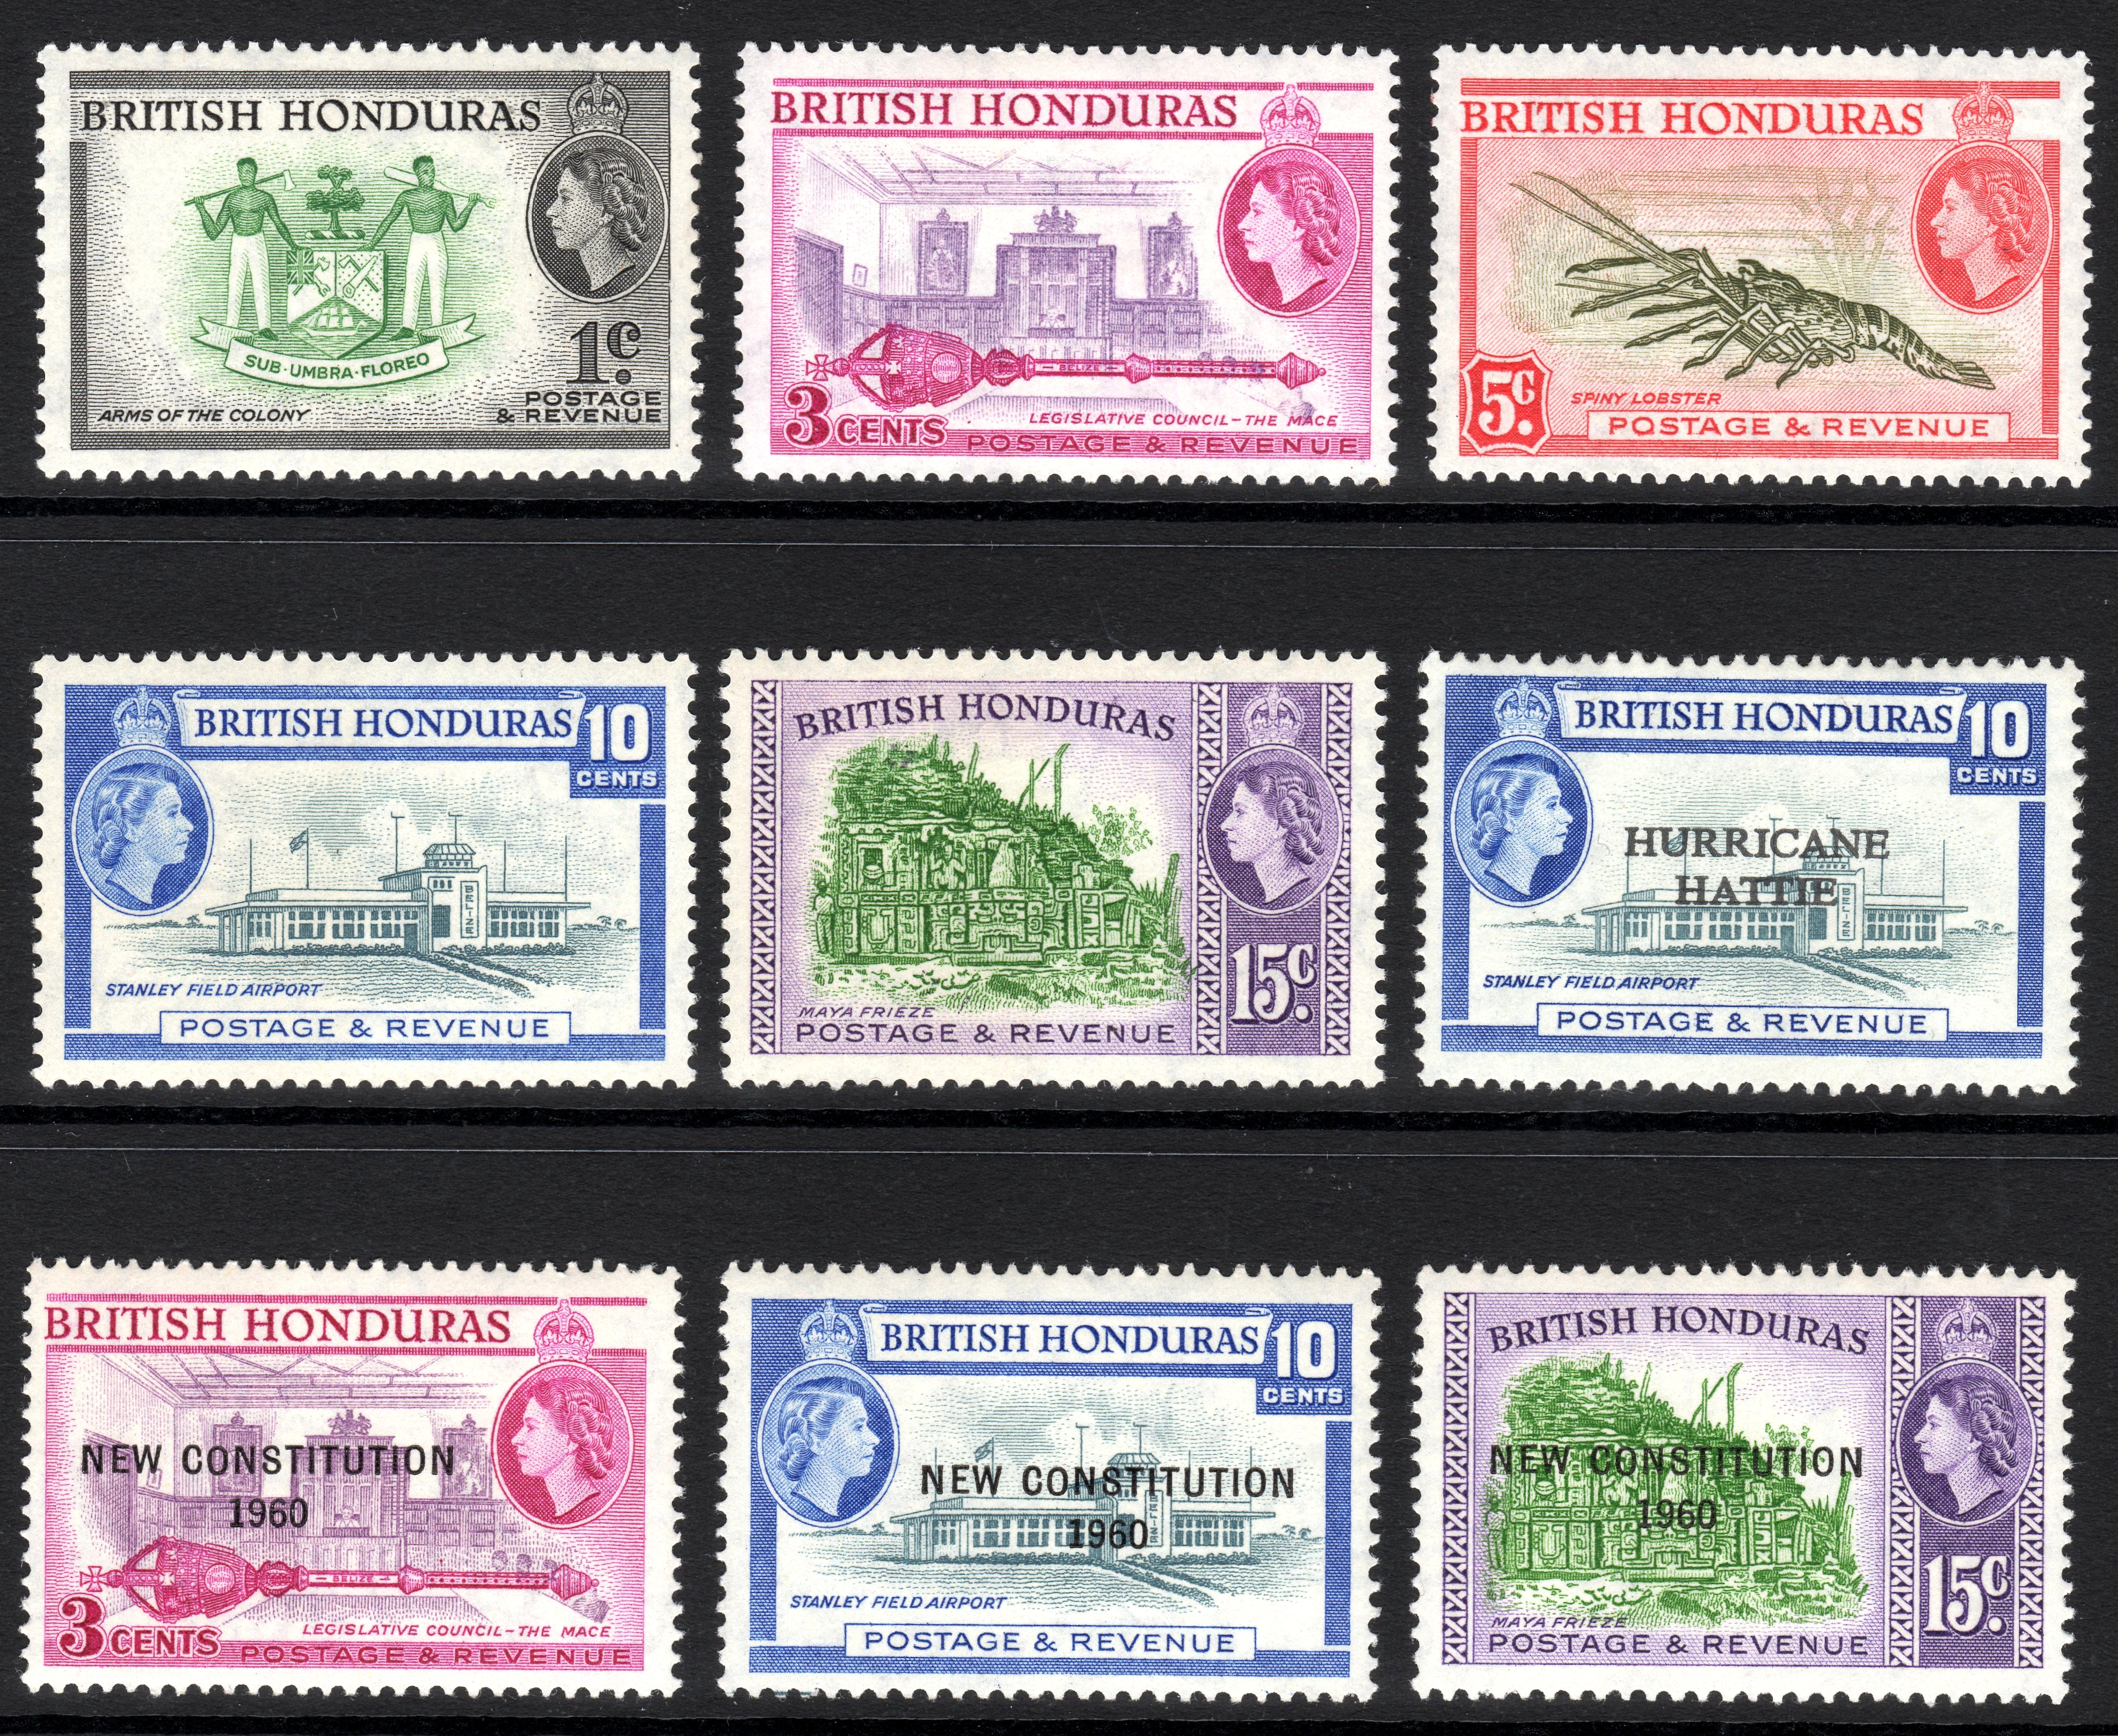 British Honduras stamps 1953 and 1961